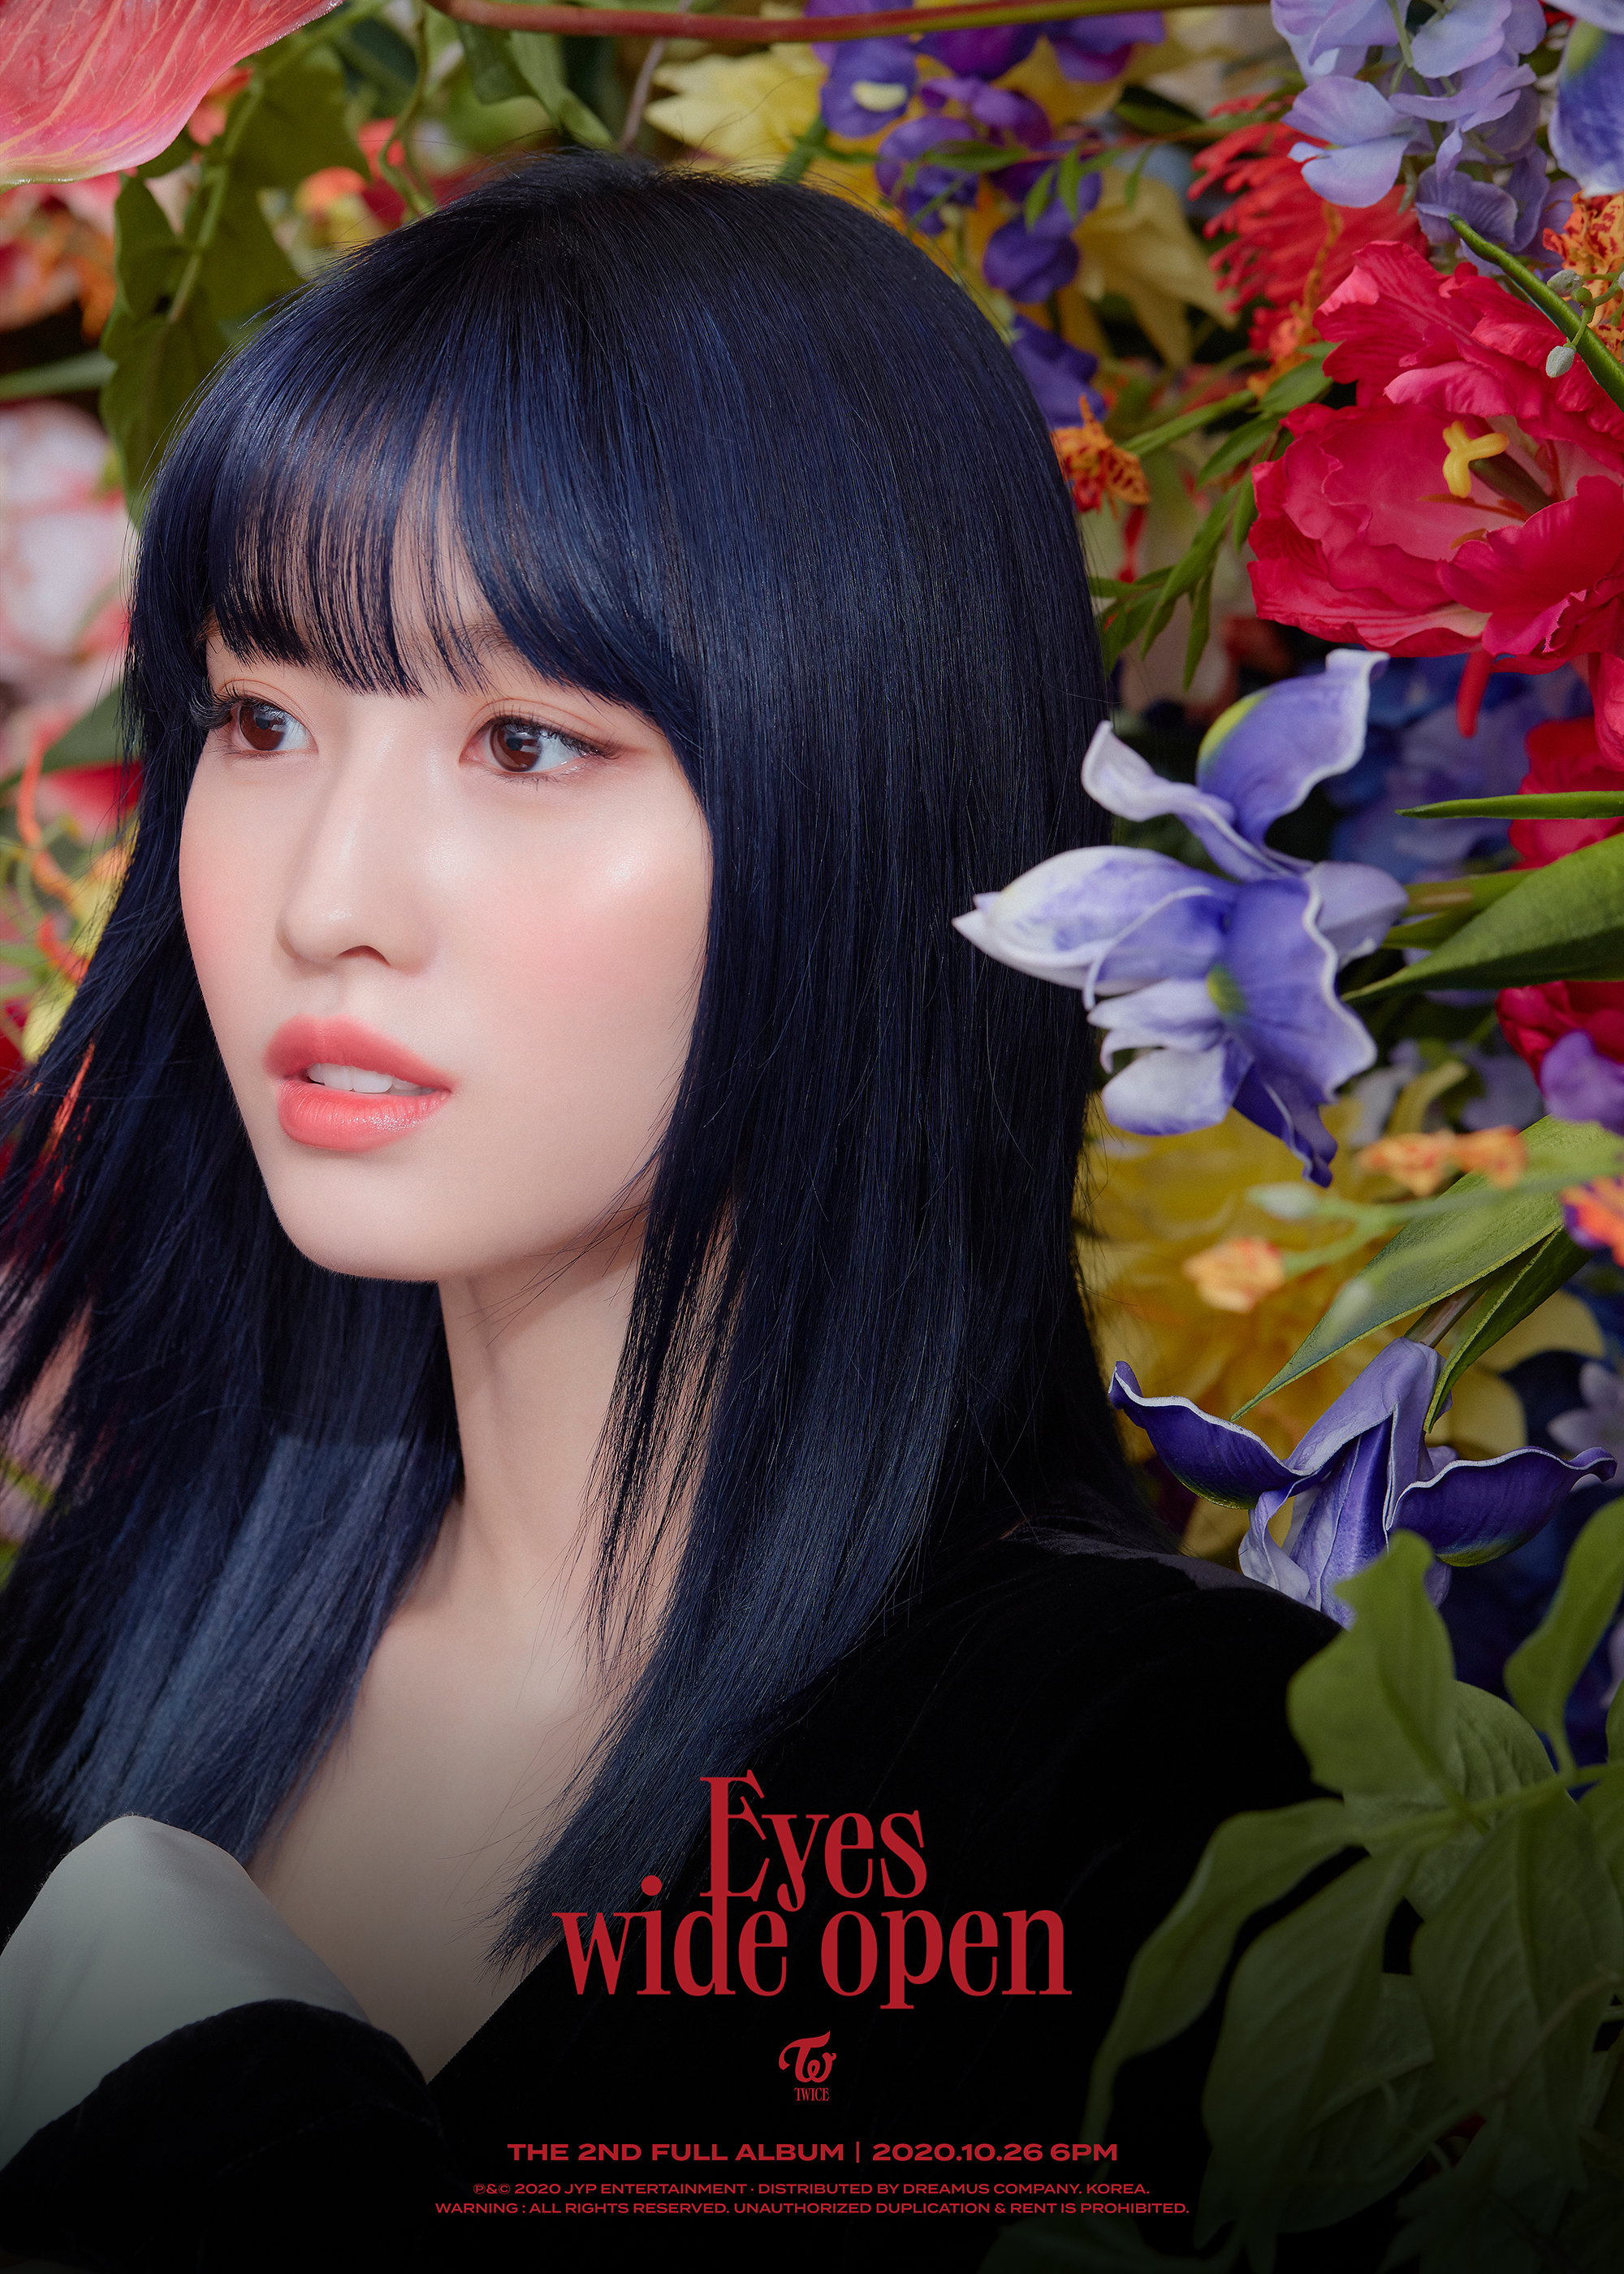 TWICE Eyes Wide Open Momo Teasers (HD/HQ)